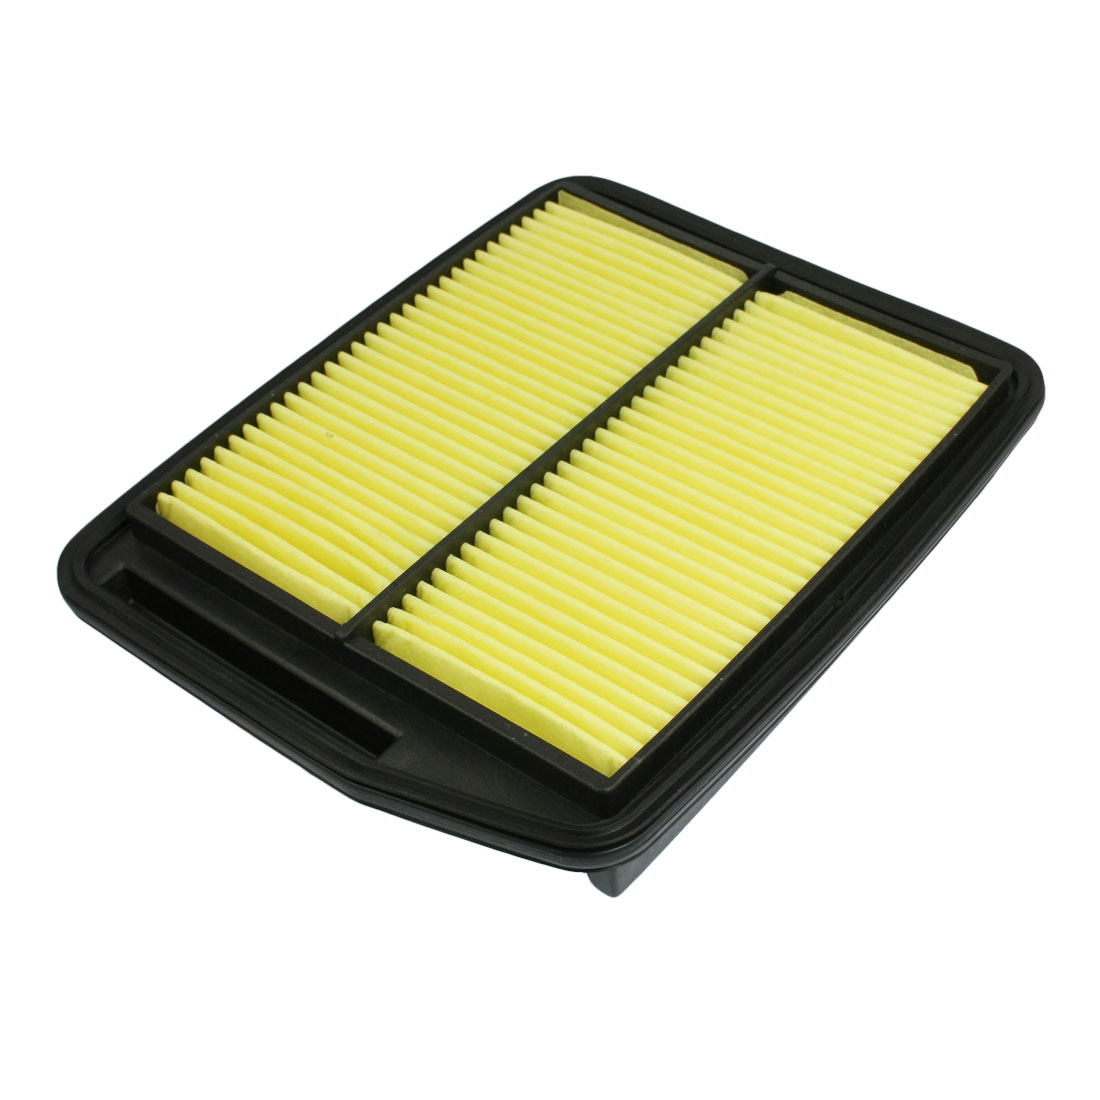 Cars Trucks Vehicles Air Filter Cleaner Black Yellow